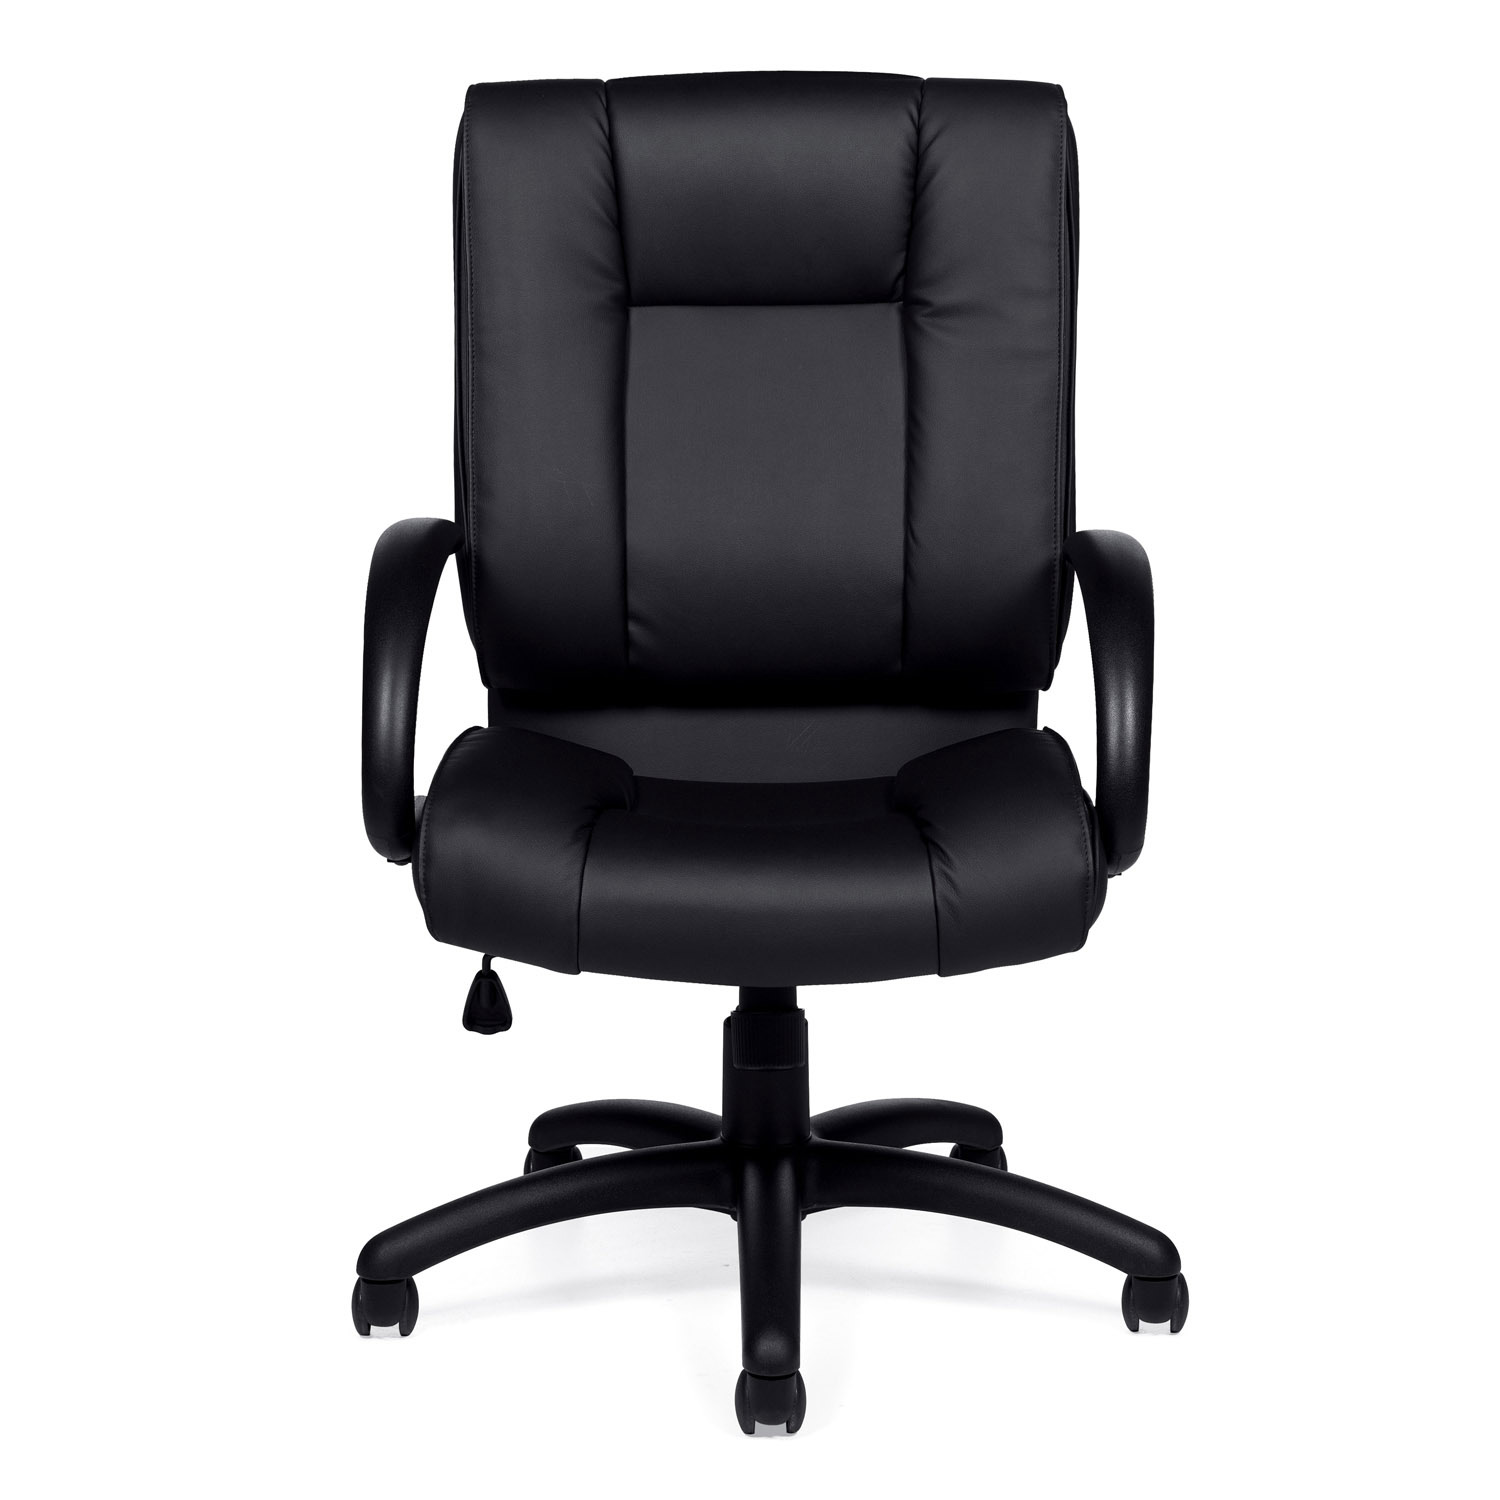 Executive Desk Chair Executive Chairs Conference Chairs